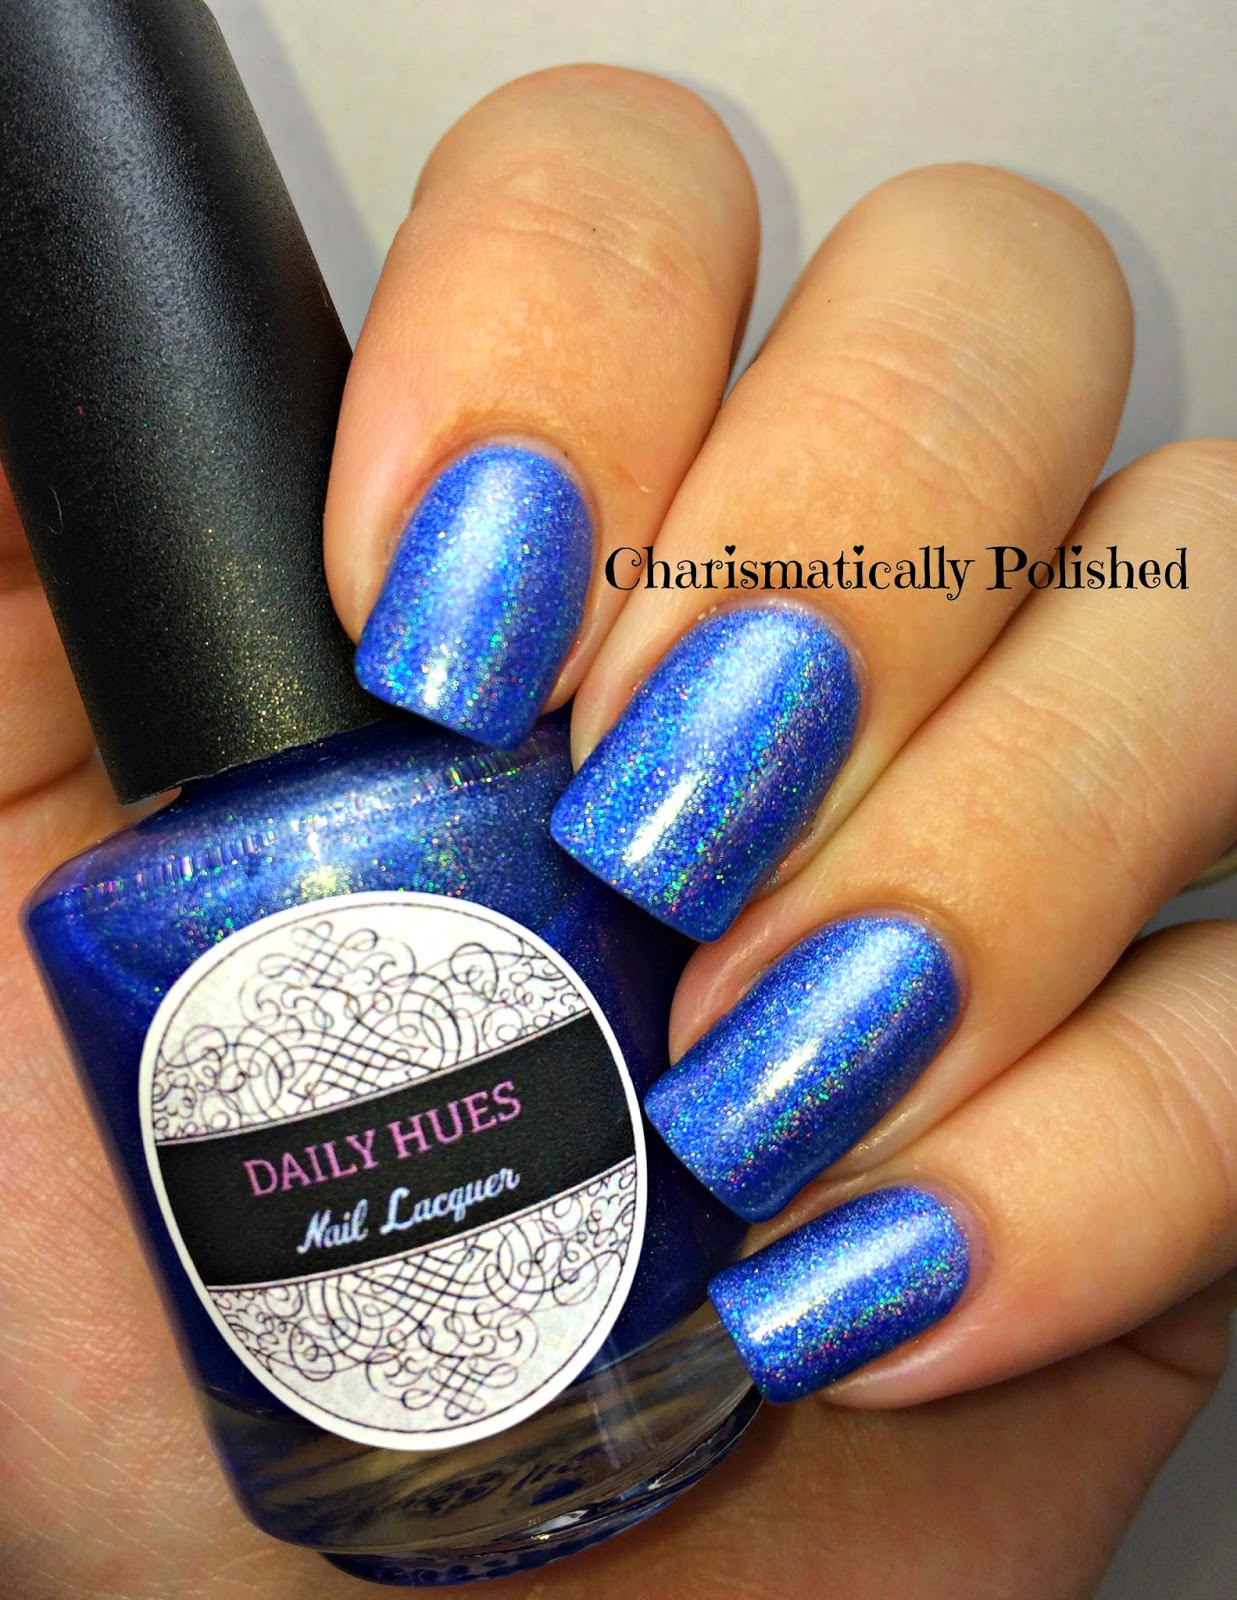 CeCe-Daily-Hues-Nail-Lacquer-Blue-Holo